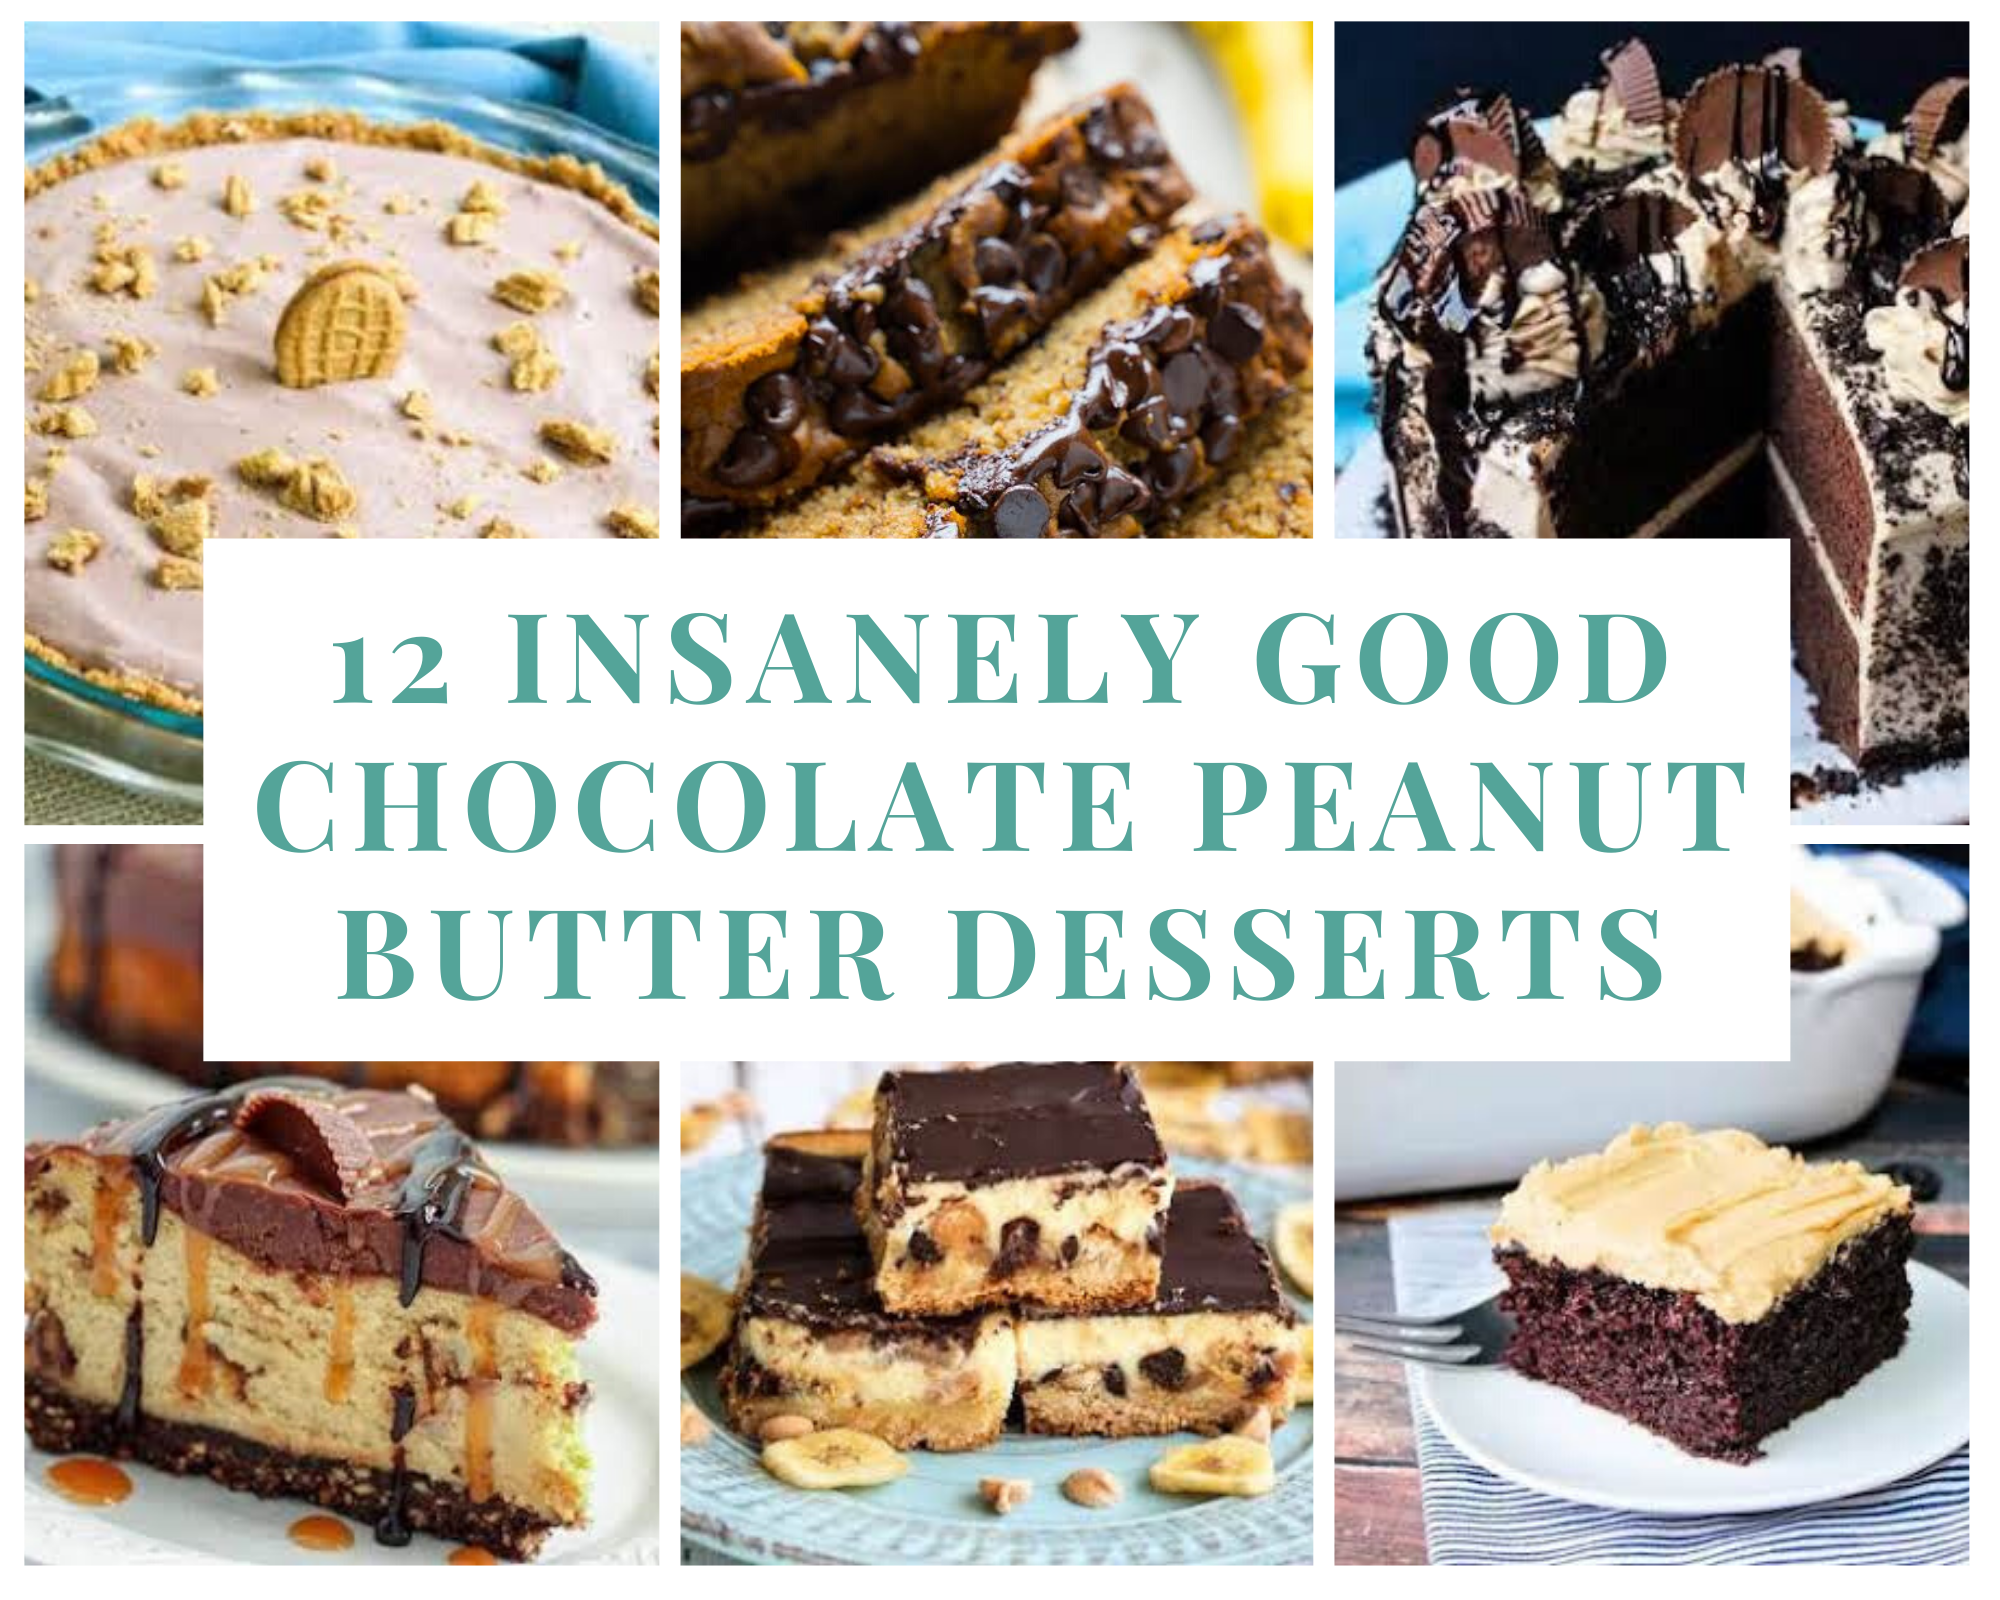 Peanut butter chocolate pies, cakes, breads and more